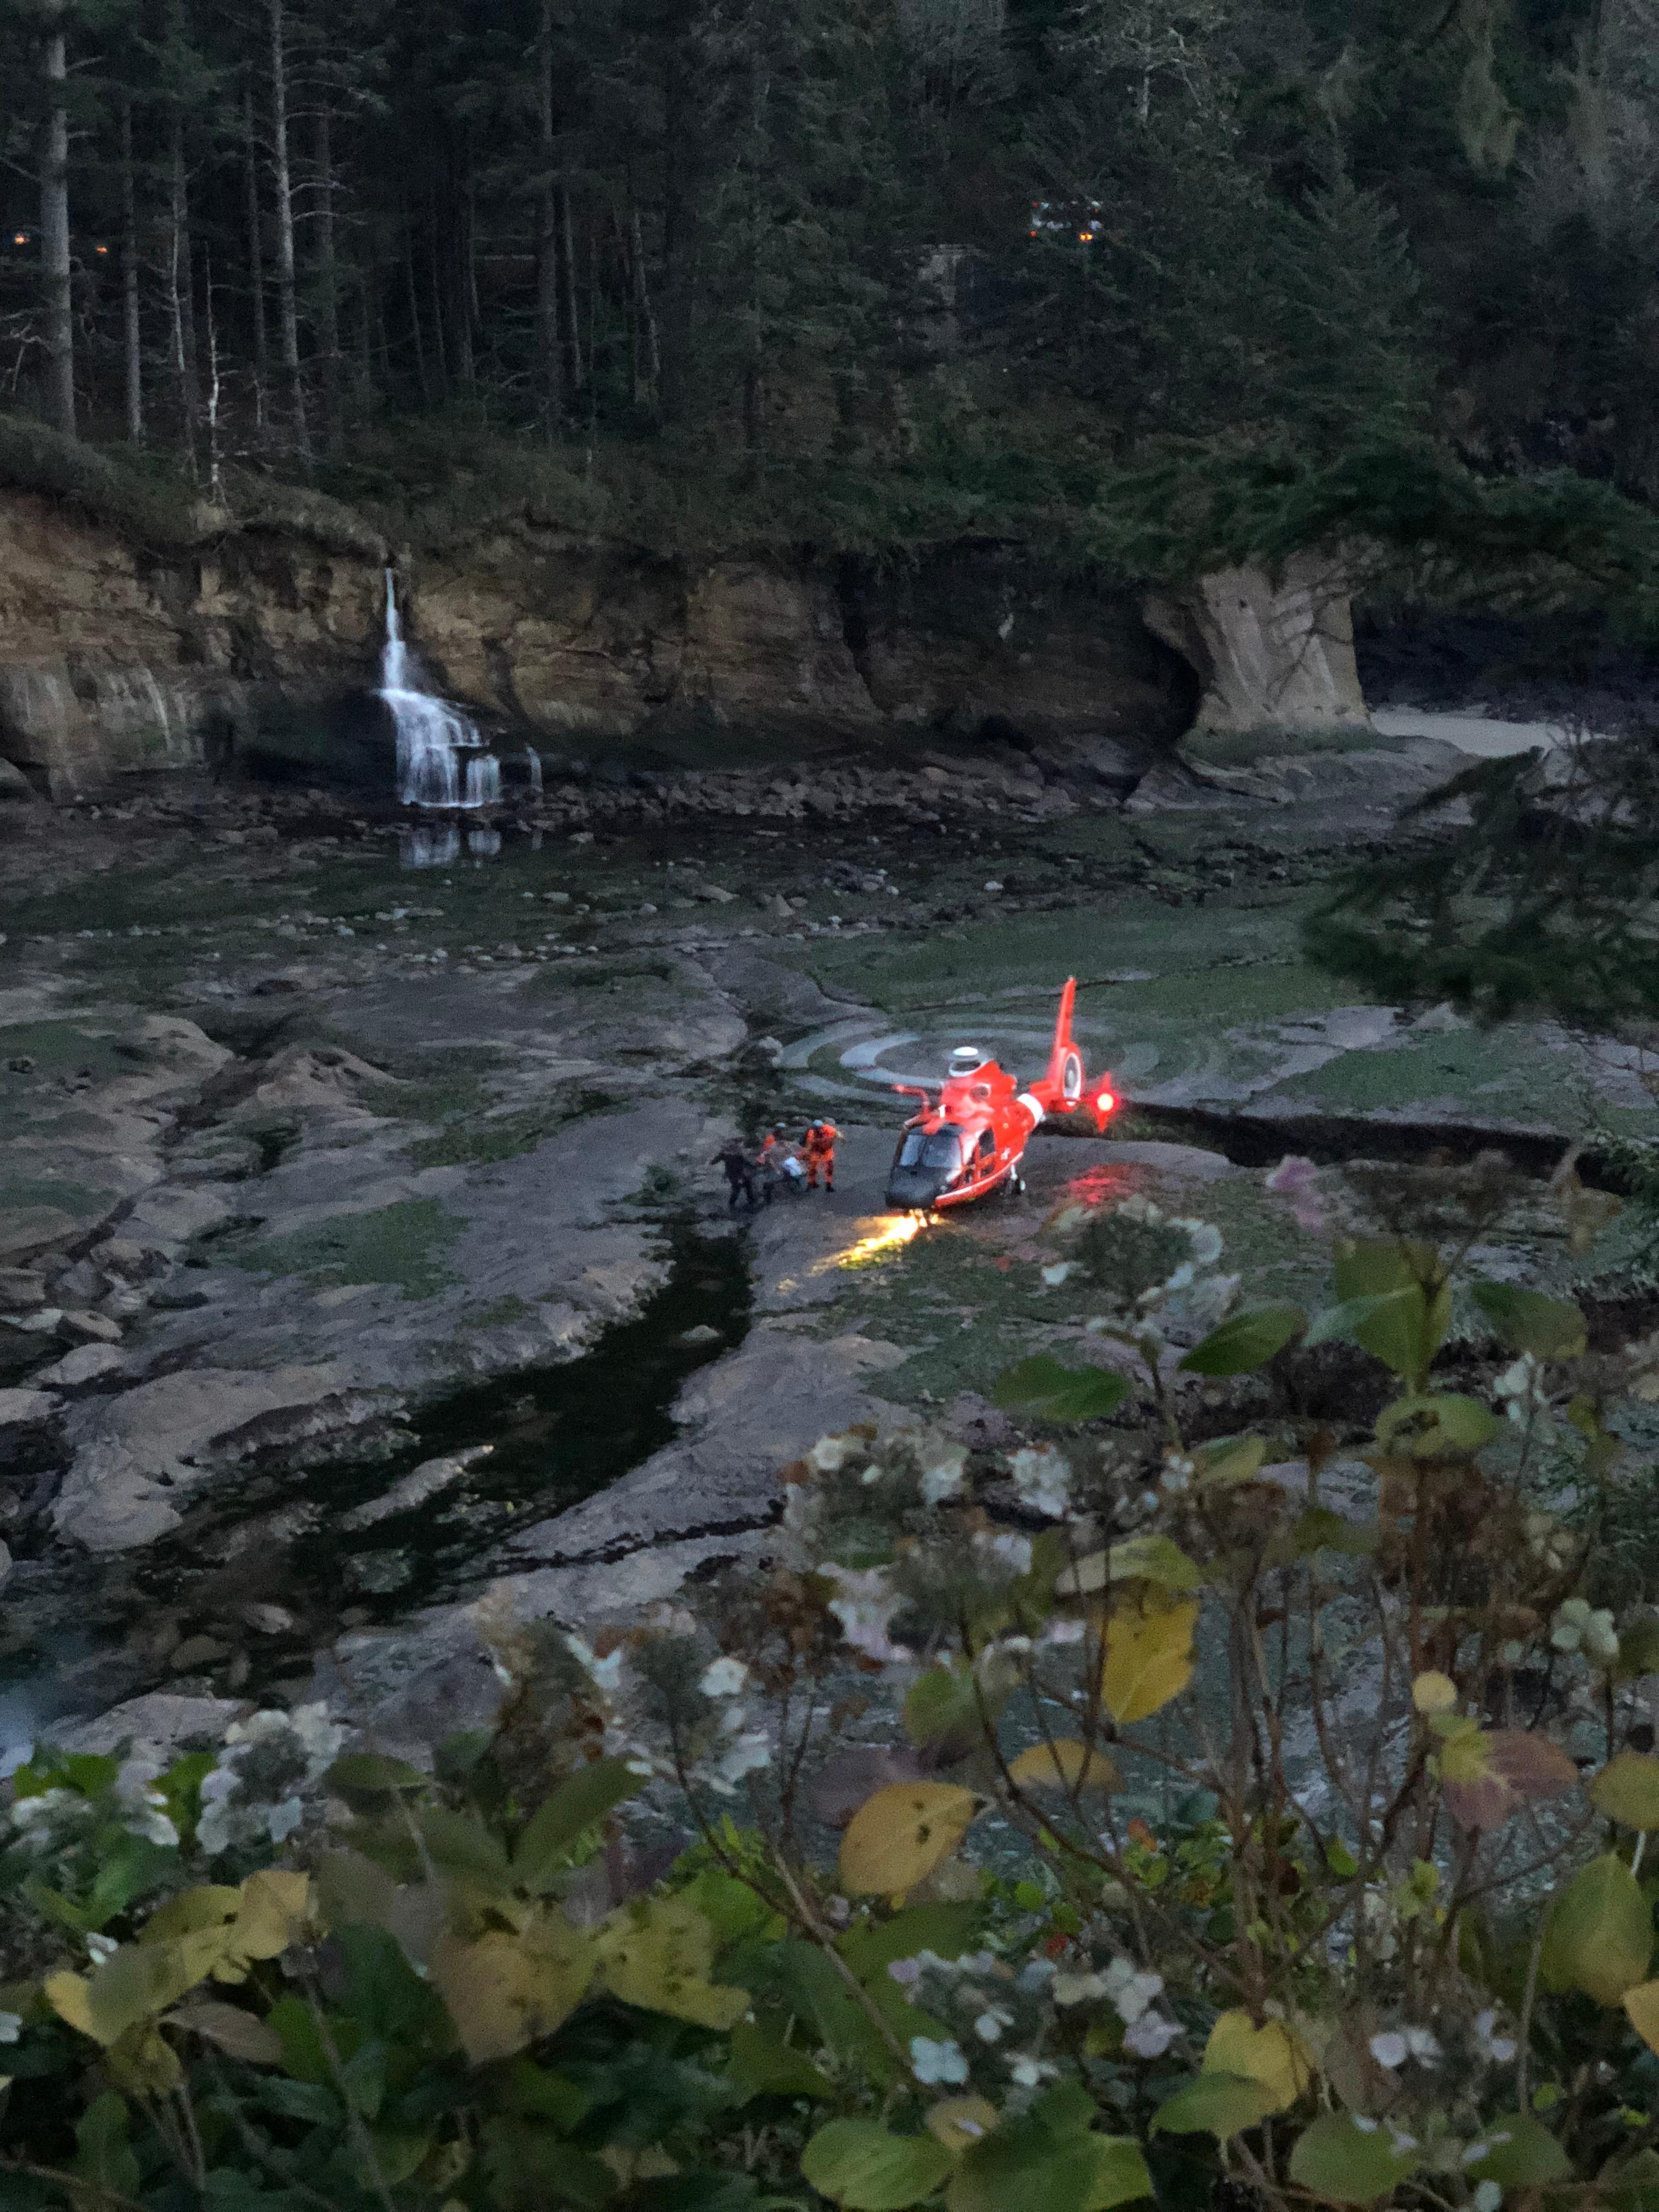 Rescuers move a man suffering from a medical condition toward a waiting U.S. Coast Guard helicopter at Big Whale Cove near Depoe Bay, Oregon on Tuesday, Jan. 2, 2018. (Photo: Depoe Bay Fire District)<p></p>